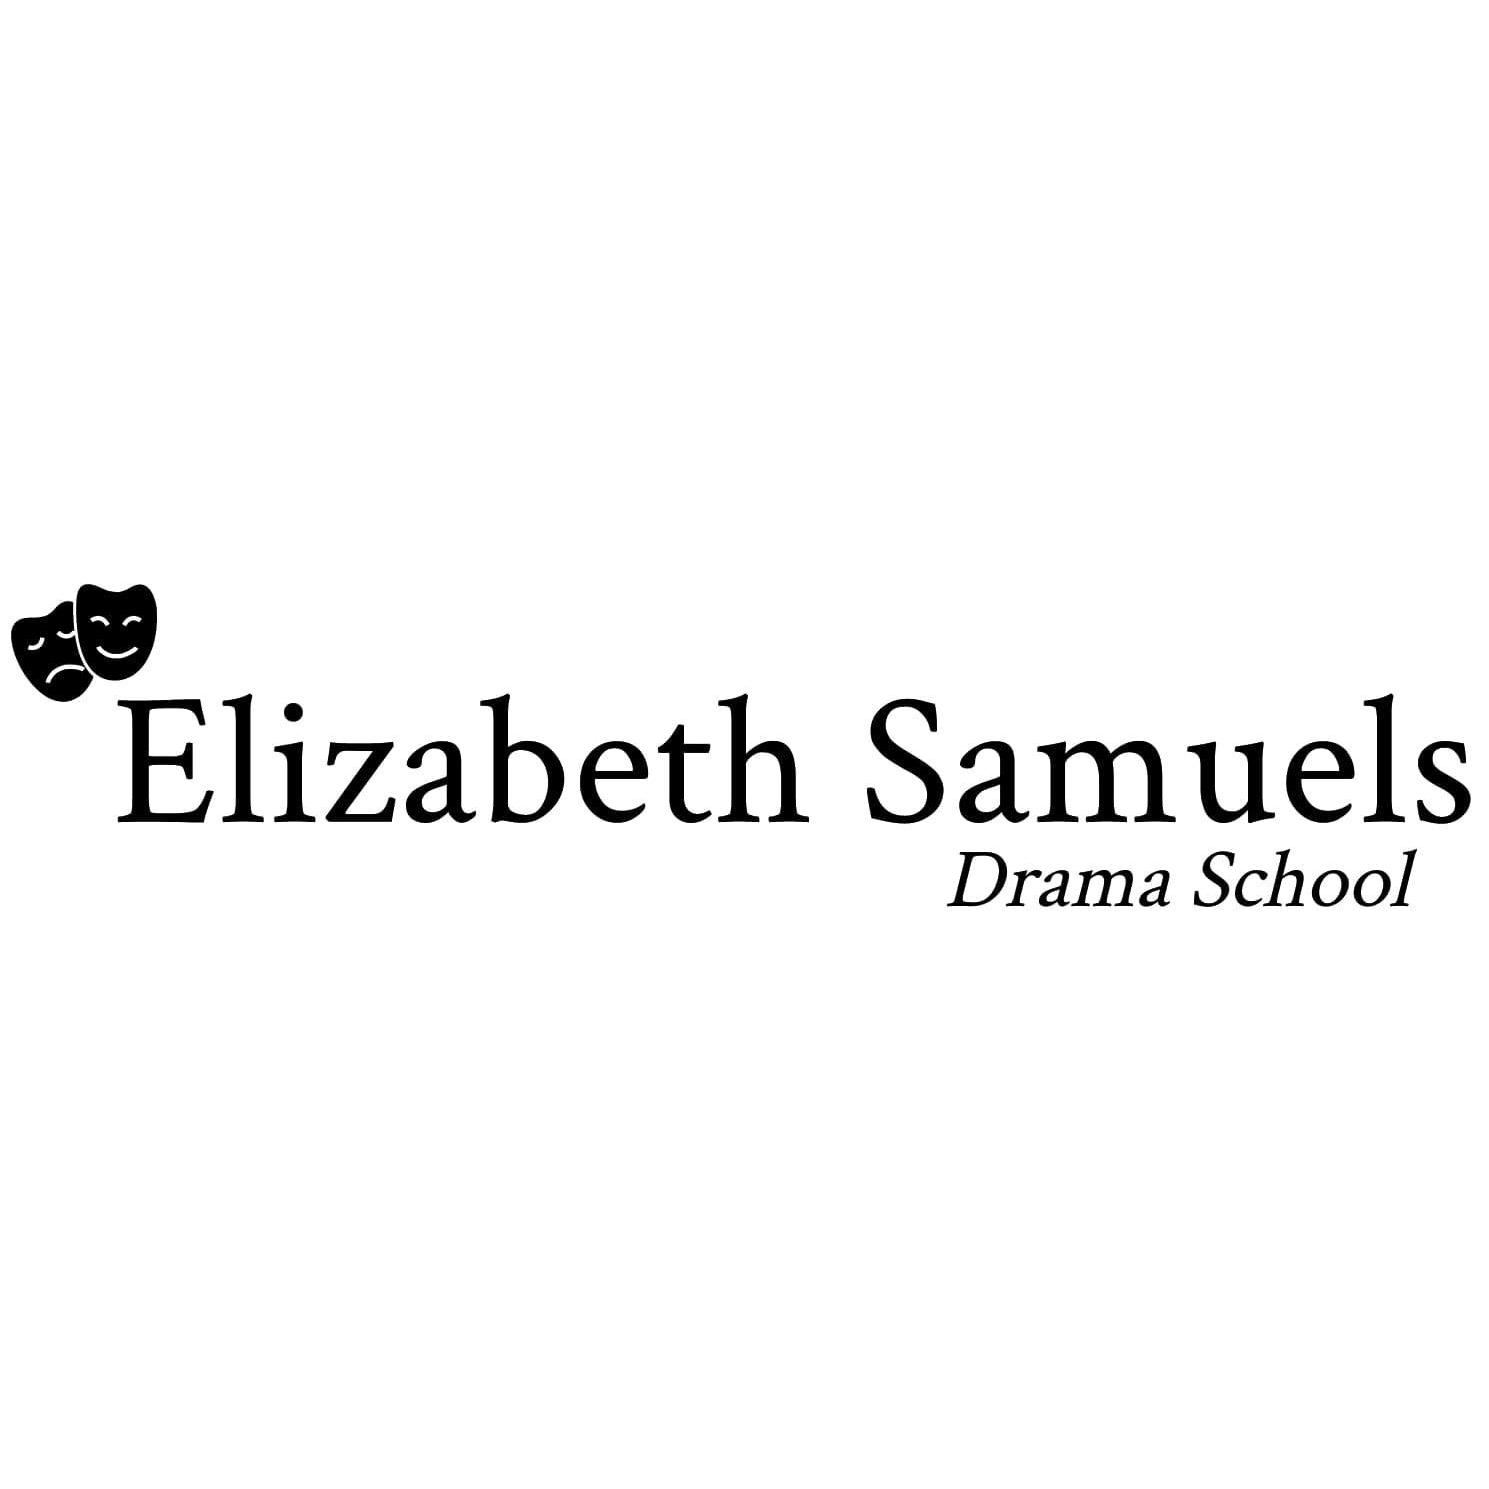 Elizabeth Samuels Drama School - Twickenham, London TW1 1LF - 07429 478447 | ShowMeLocal.com